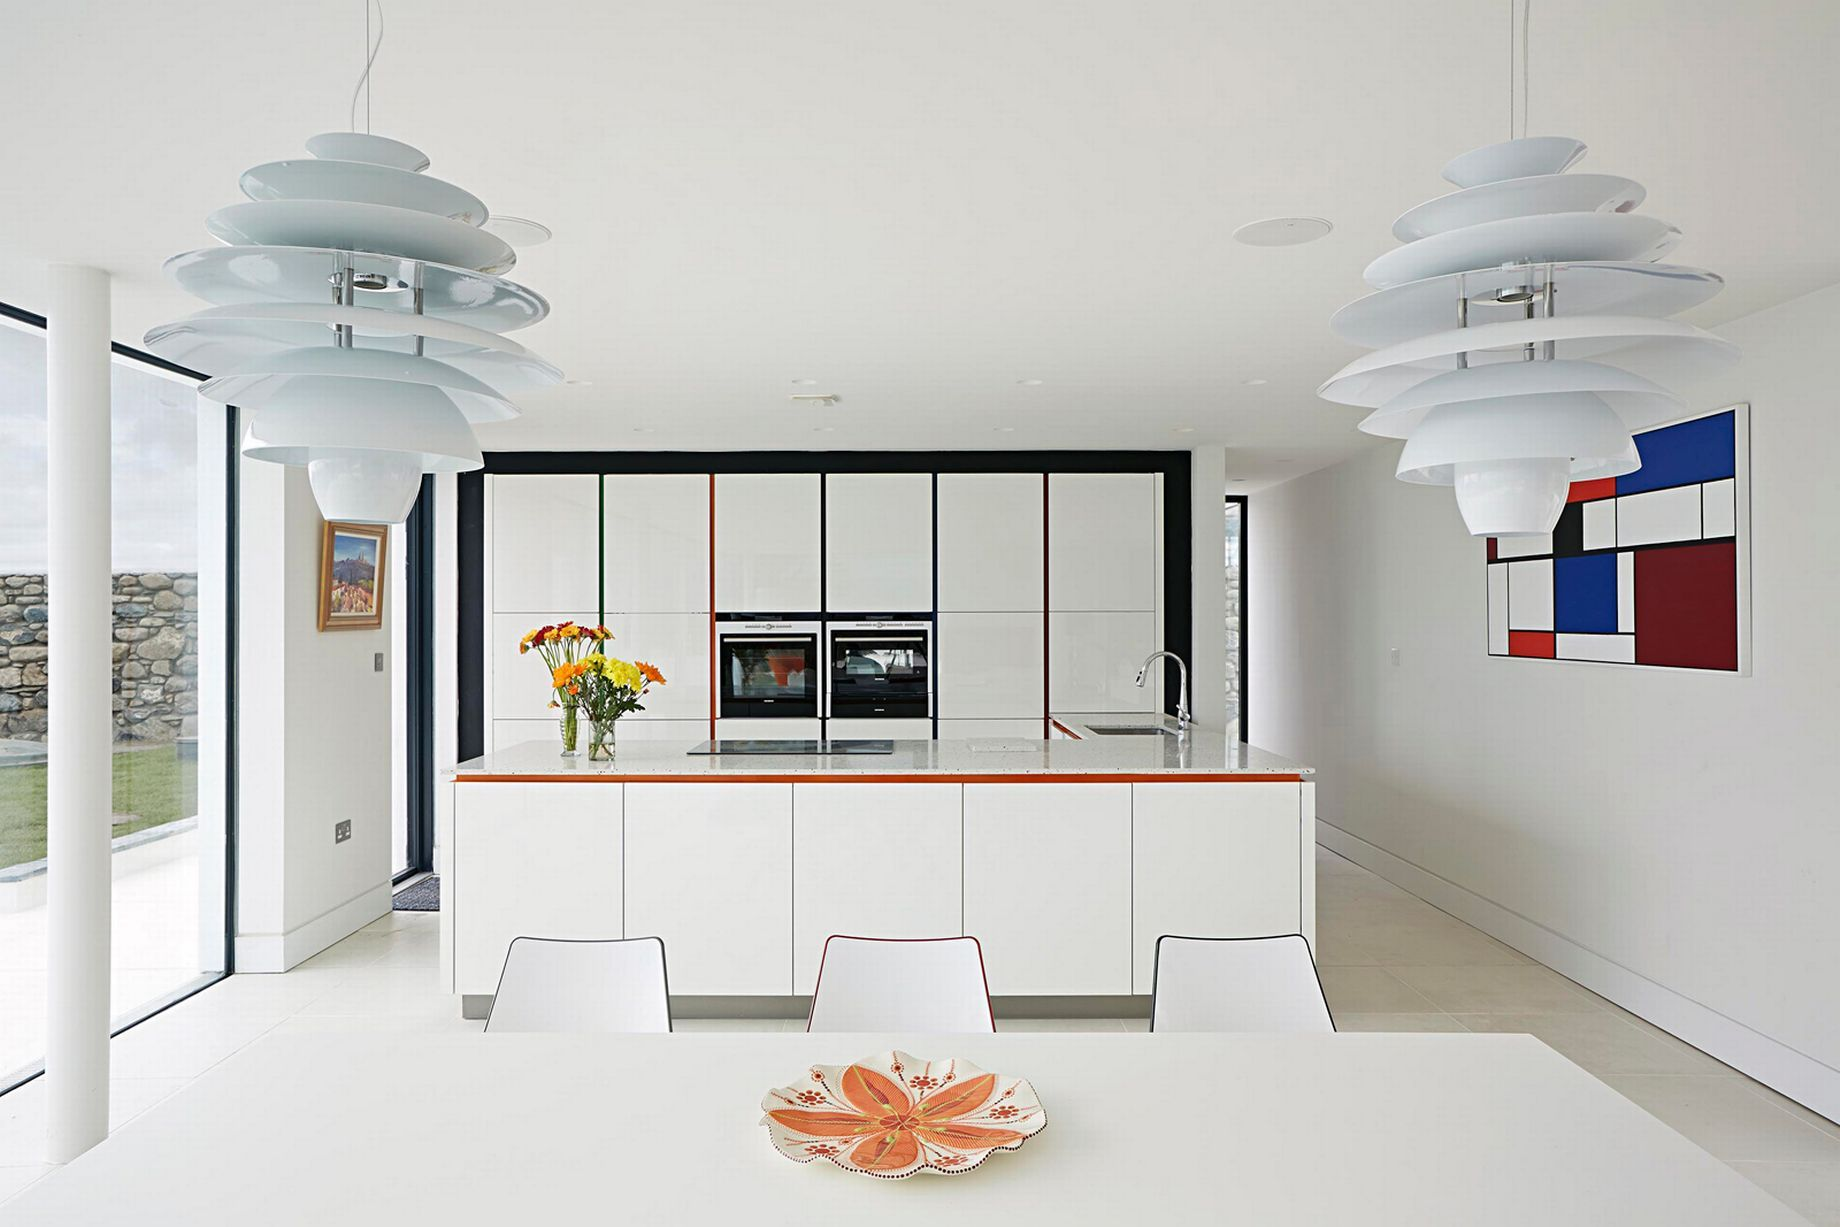 Uncategorized Grand Designs Kitchen grand designs review north wales cliffhanger has us on edge edge